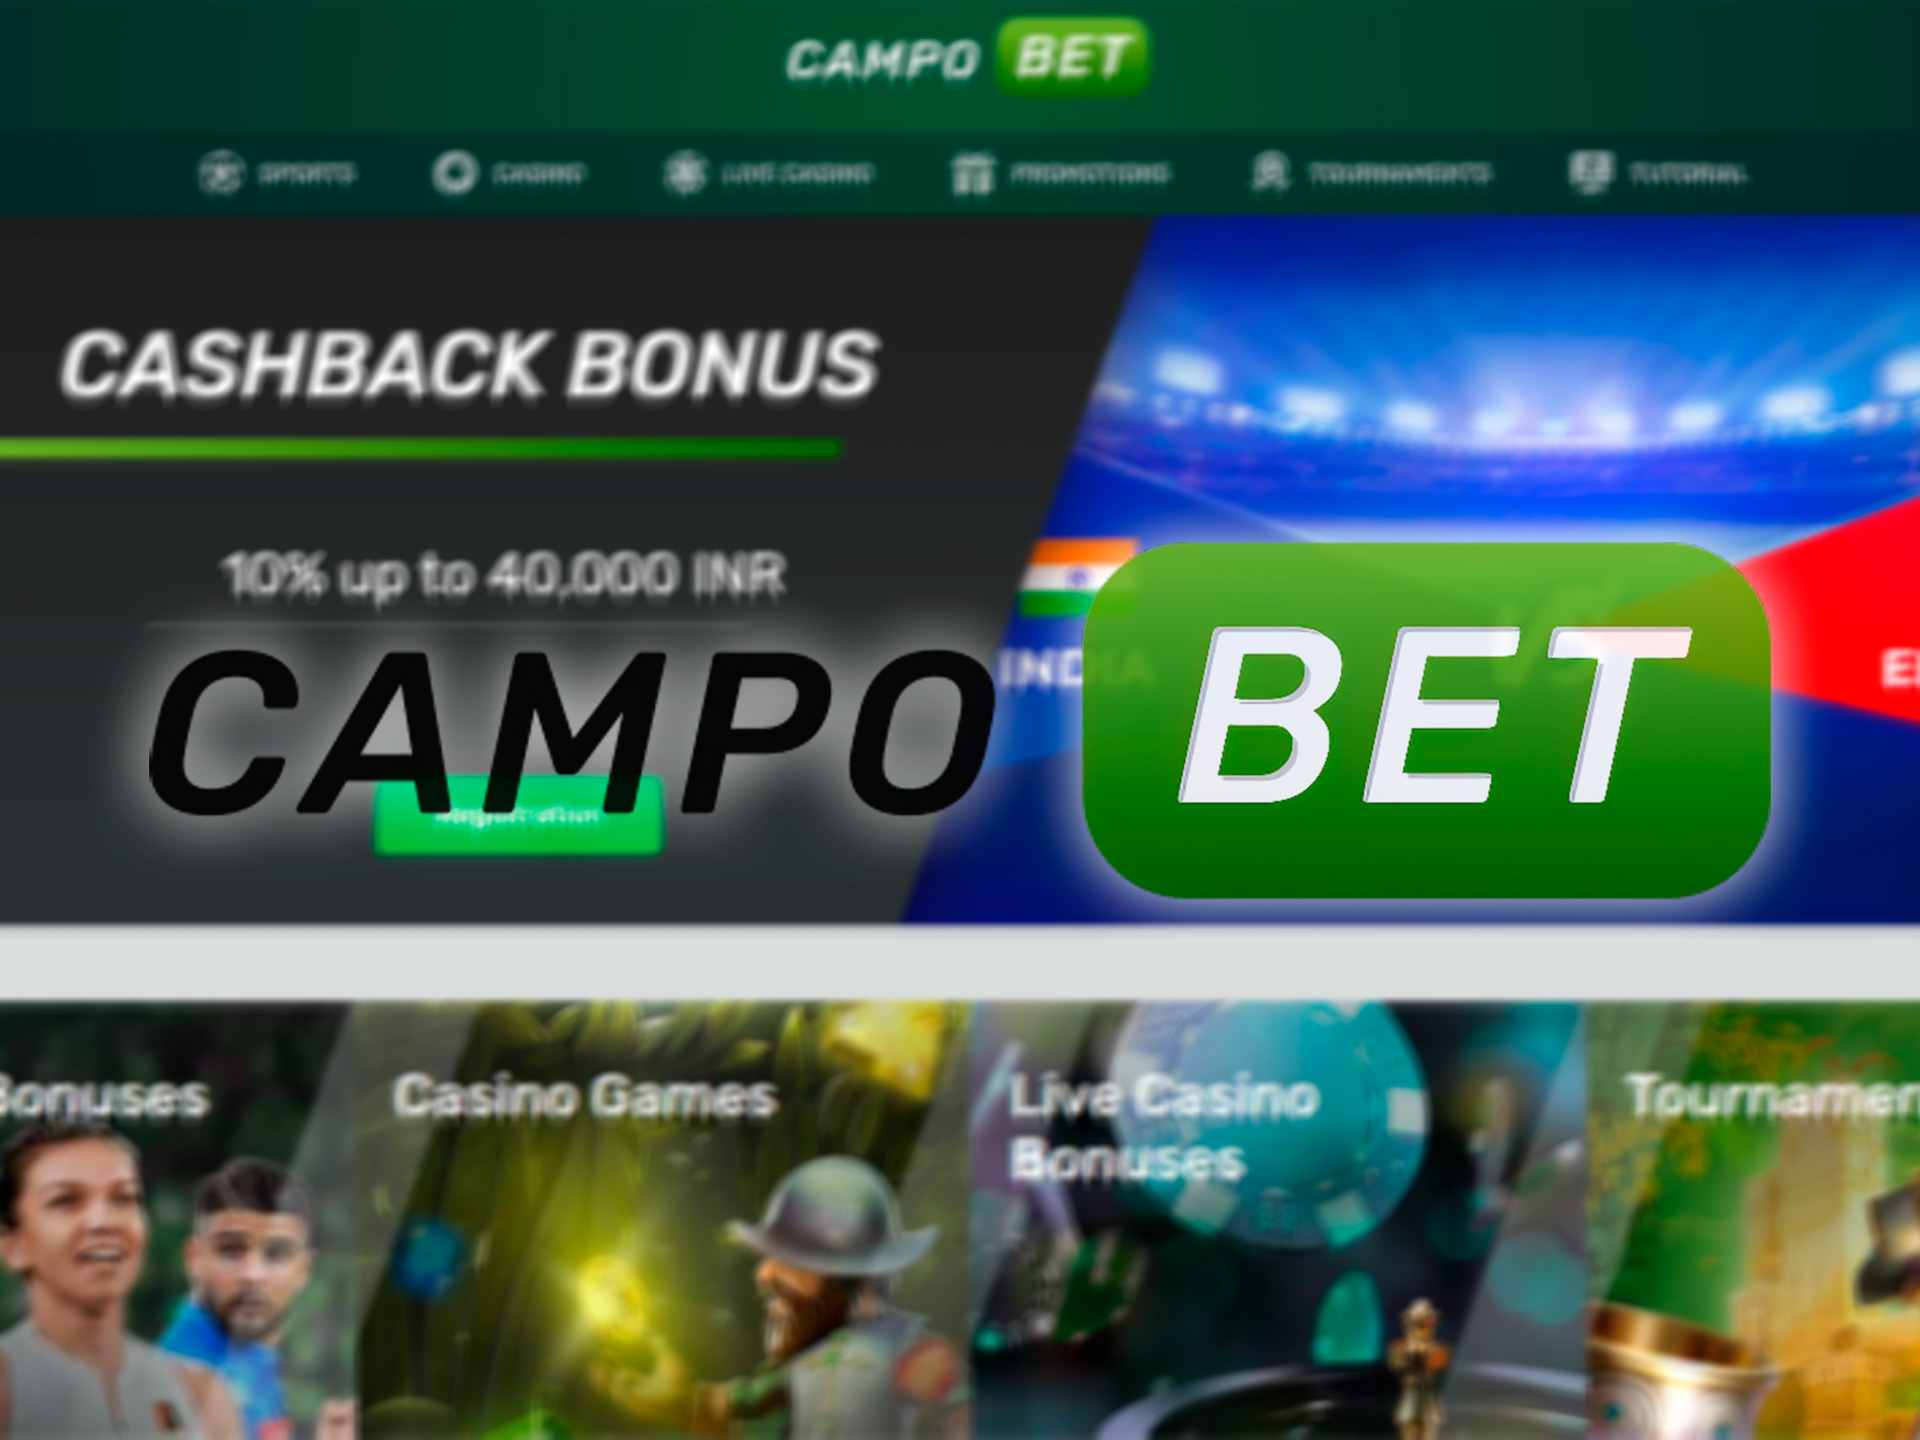 Campobet offers a large welcome bonus for newcomers to palce bets on IPL mathces.